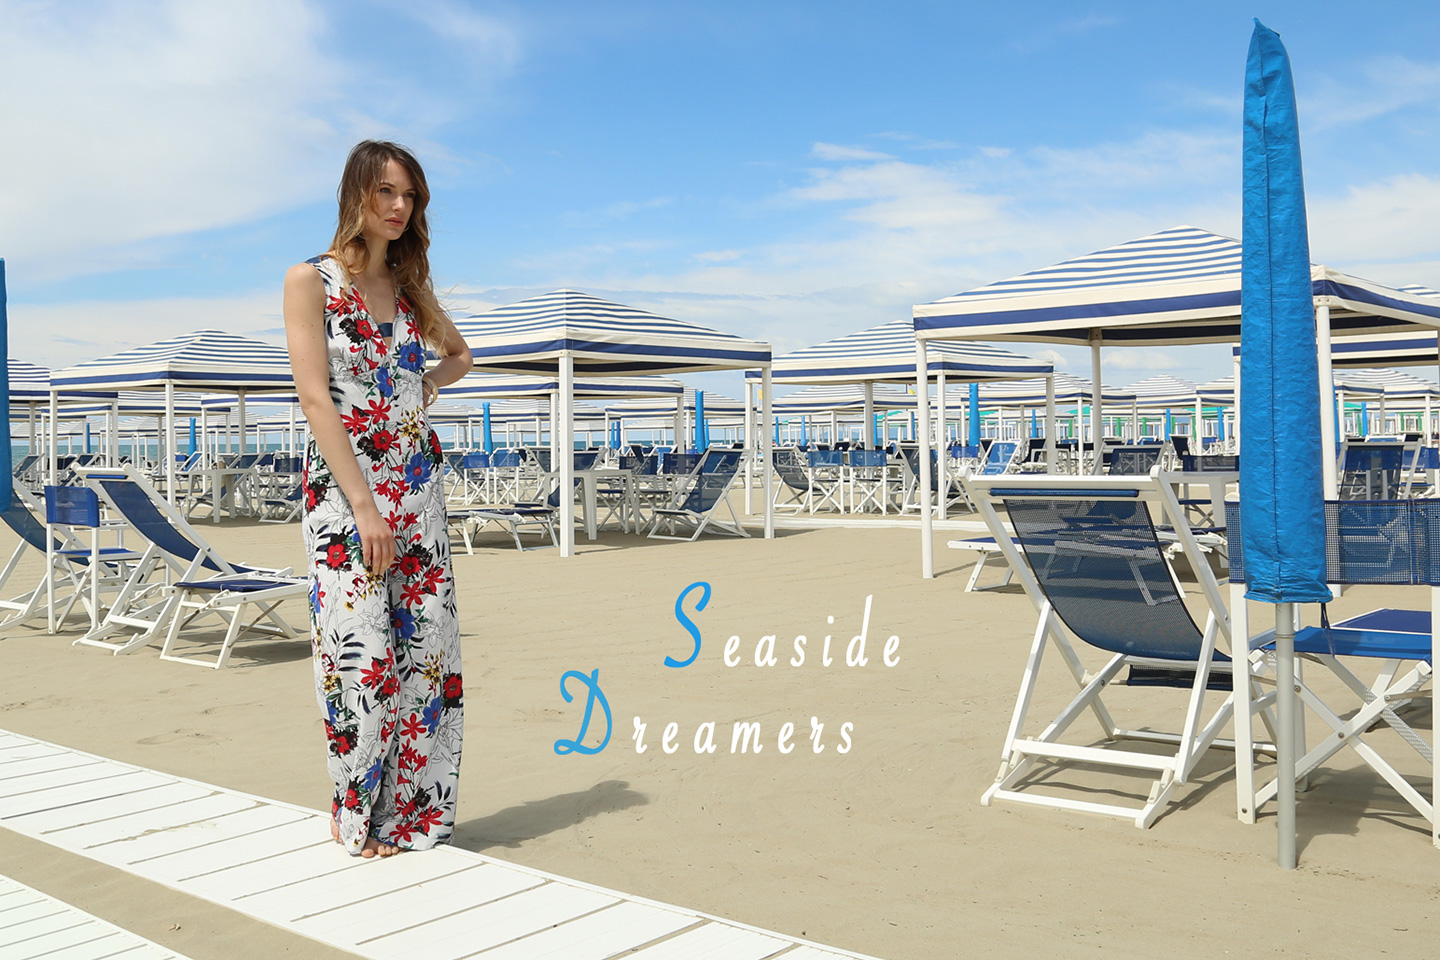 Seaside Dreamers